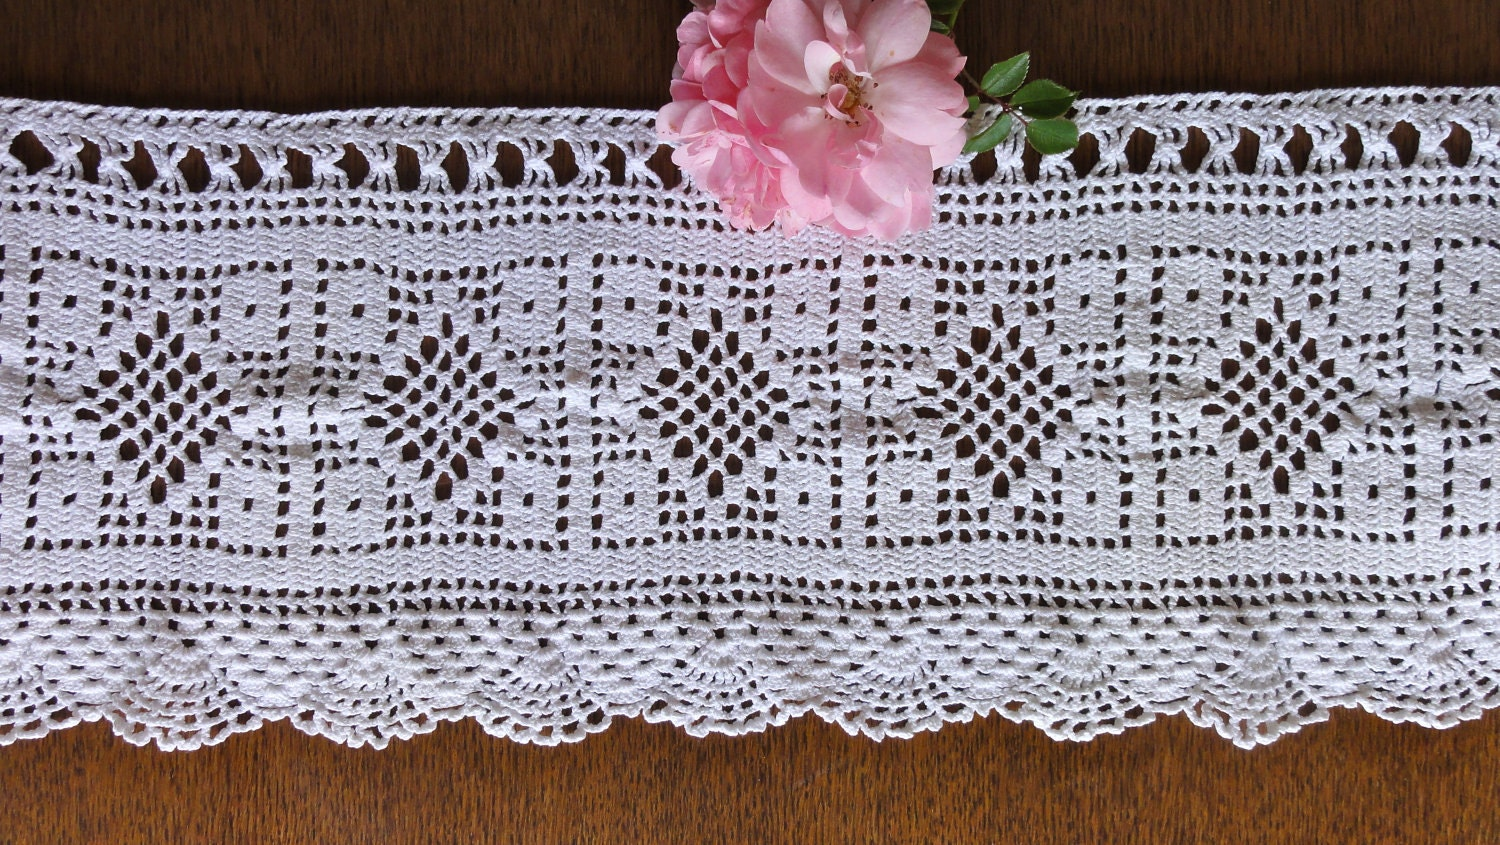 Captivating Crocheting: Make Crocheted Table Runners, Wall